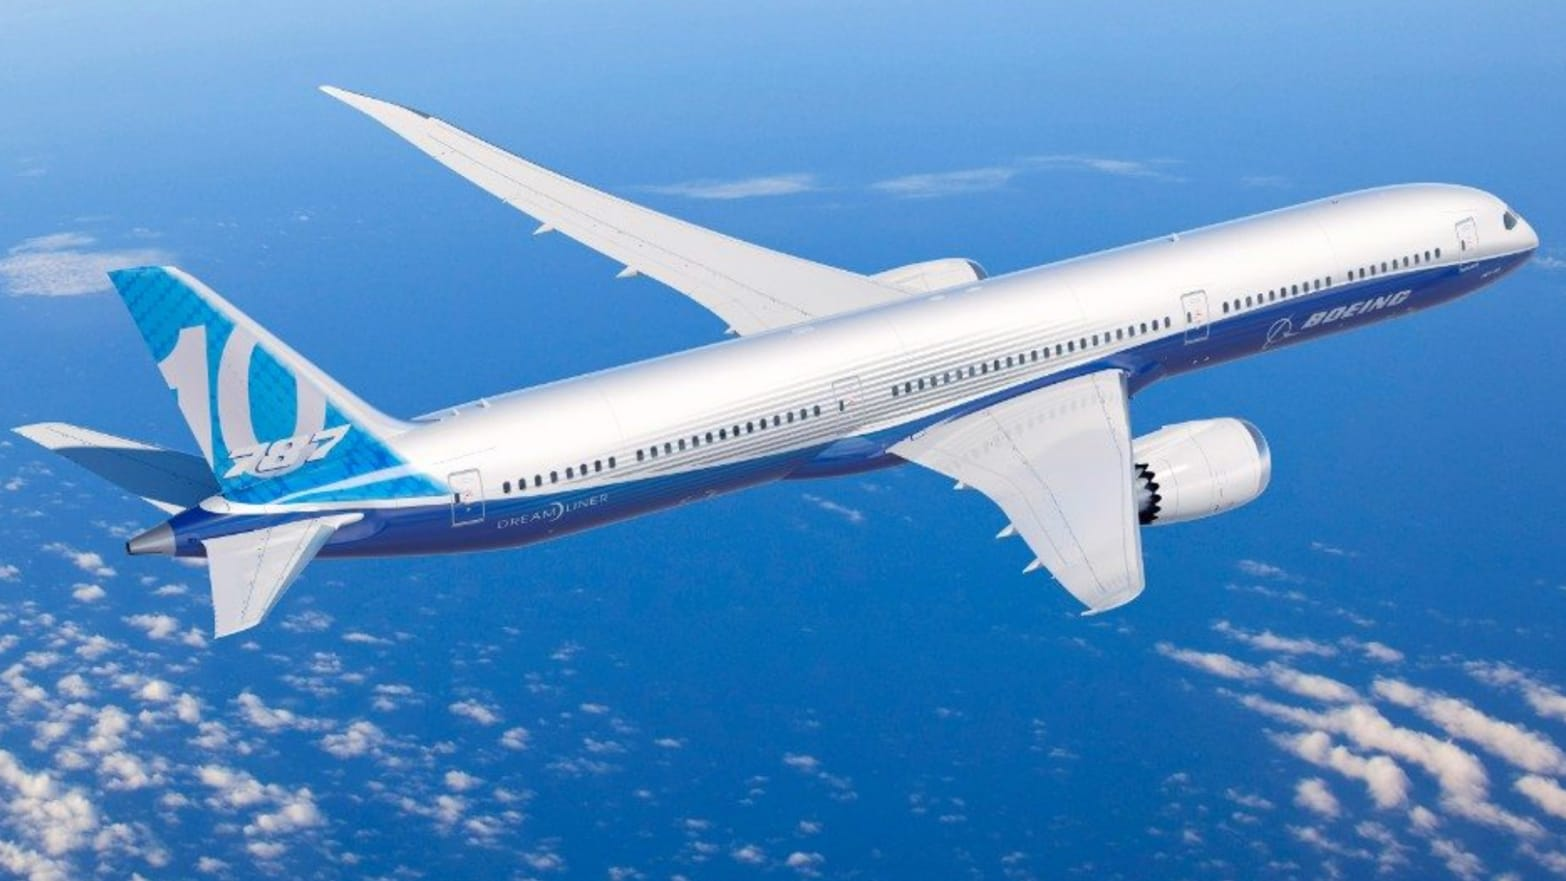 Boeing 737 MAX-10 Has Safety Concerns, but FAA Says It's OK